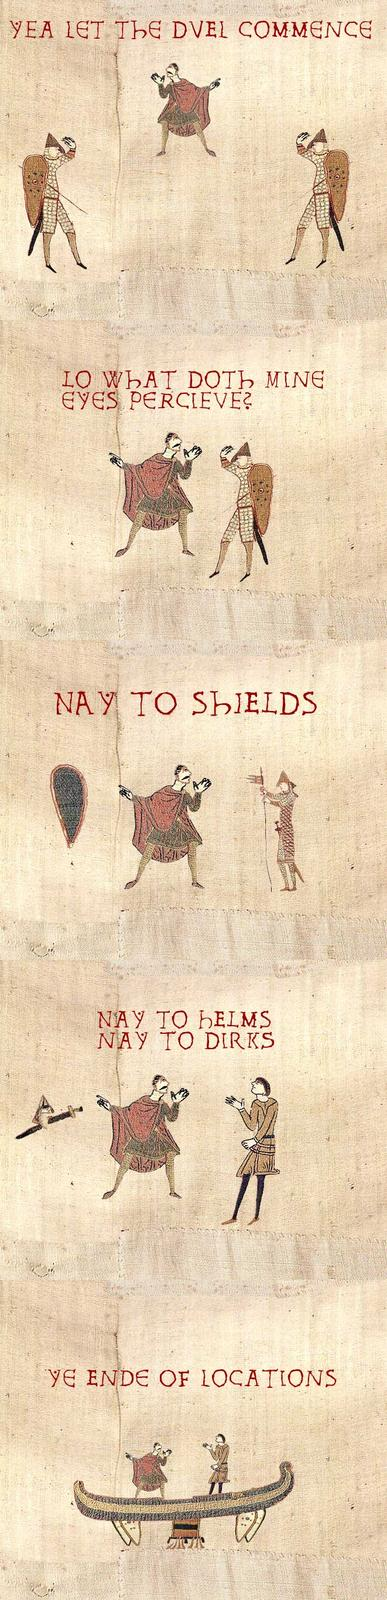 Bayeux_Final_Destination.jpg